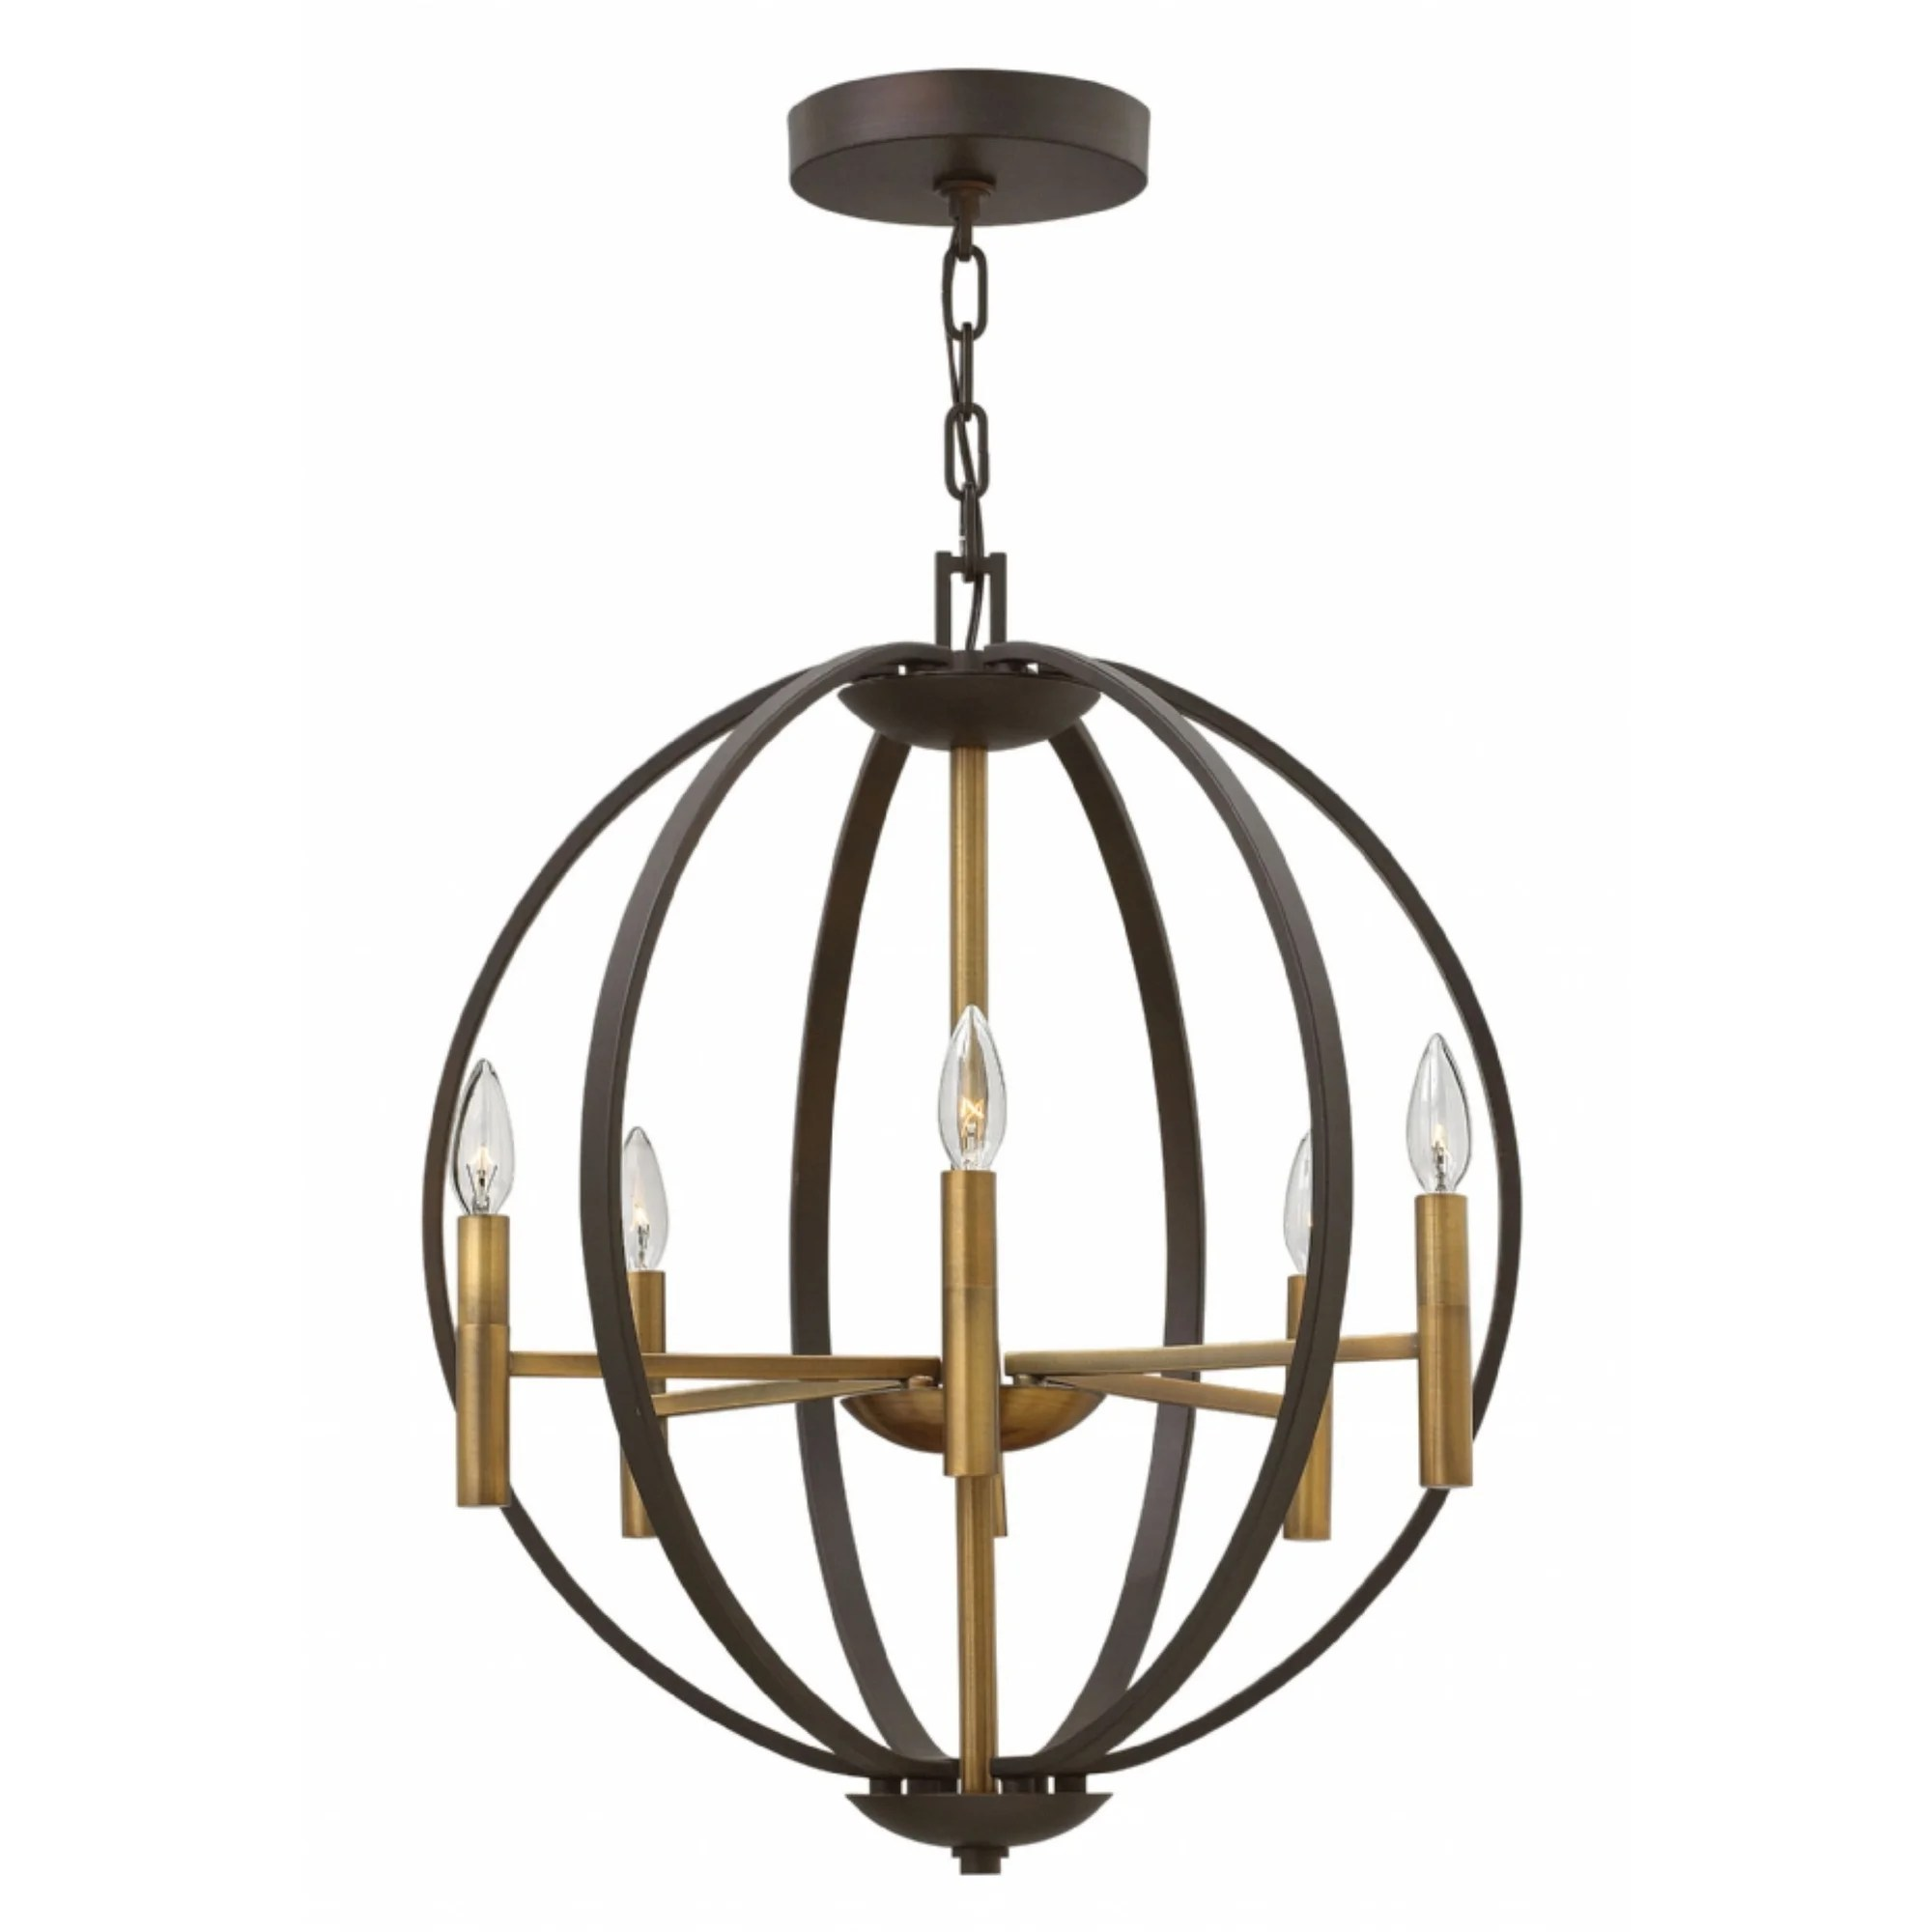 Spanish Chandelier Hinkley Euclid 6 Light Chandelier In Spanish Bronze